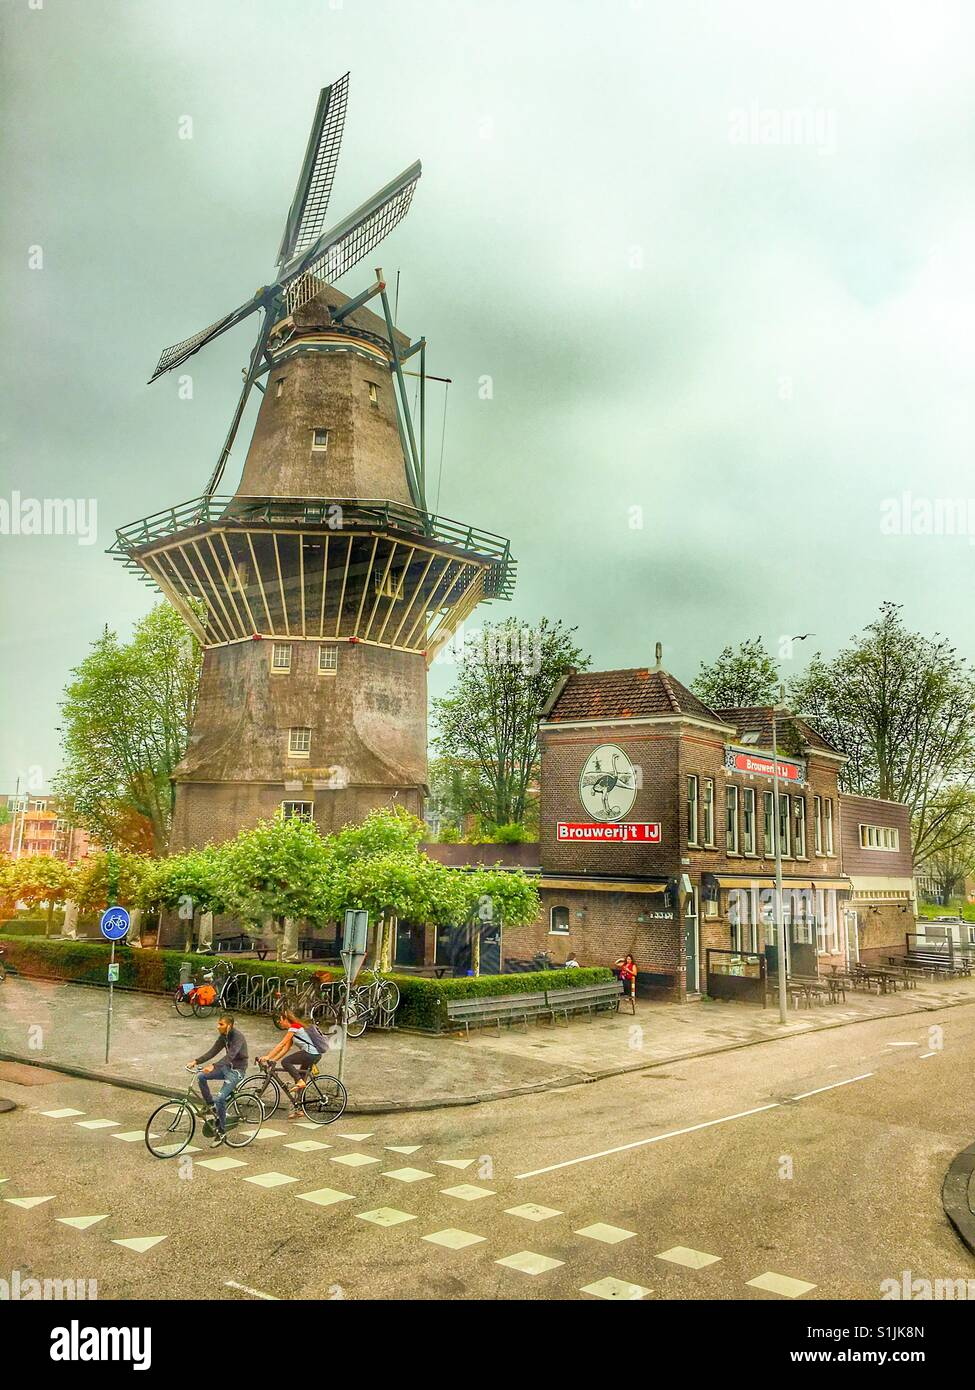 IJ Brewery and Gooyer Windmill in Amsterdam, Netherlands - Stock Image